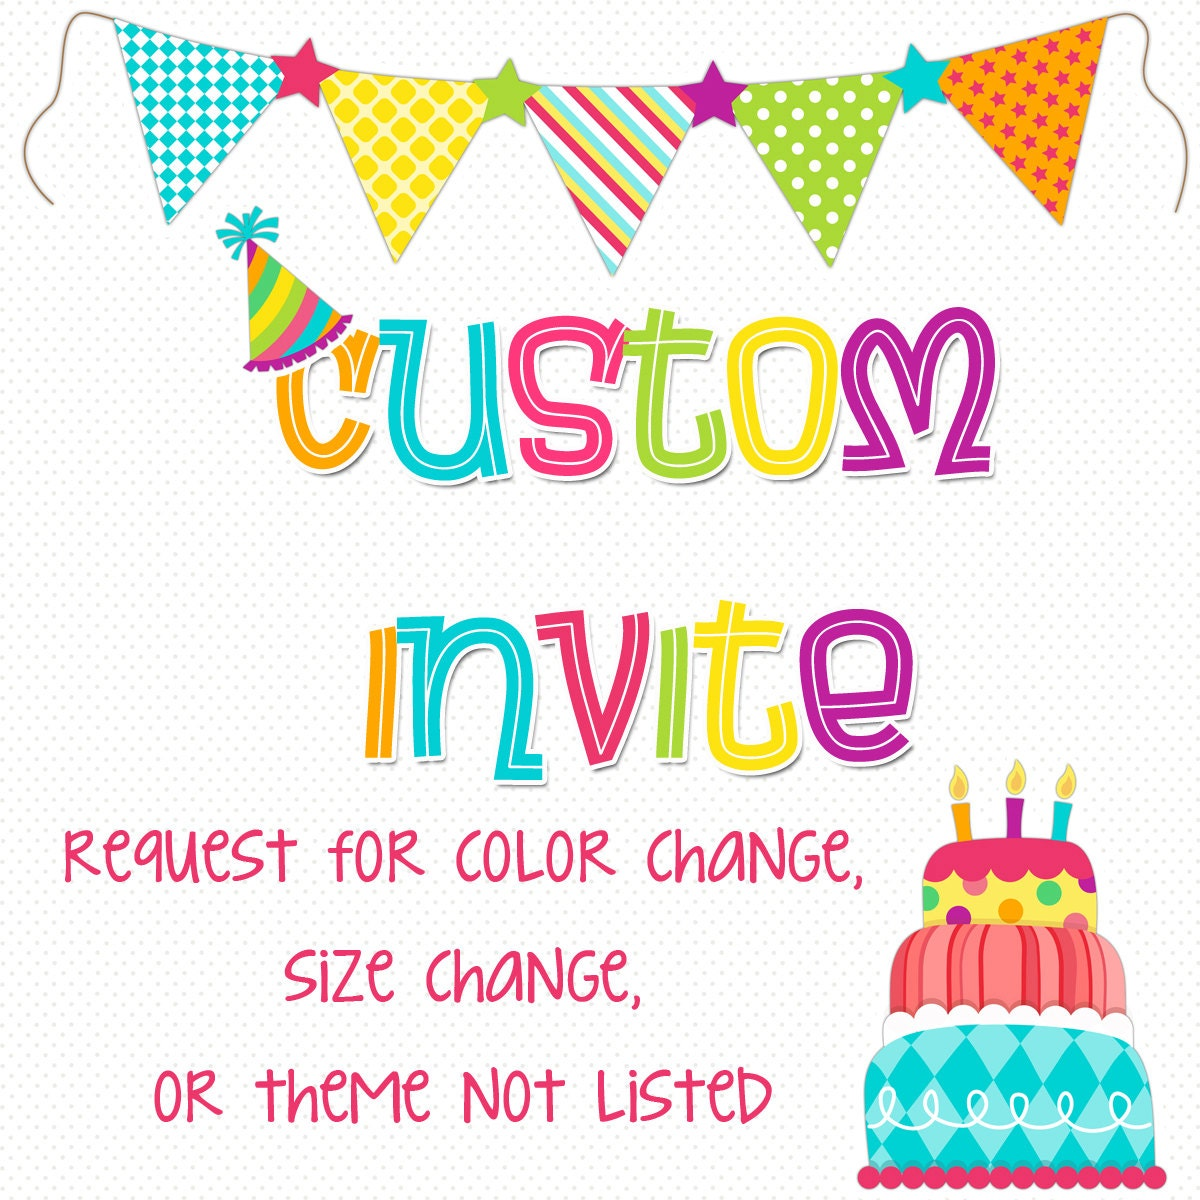 Cheap Design Changes That Have: CUSTOM INVITE REQUEST Request For Color Change Size Change